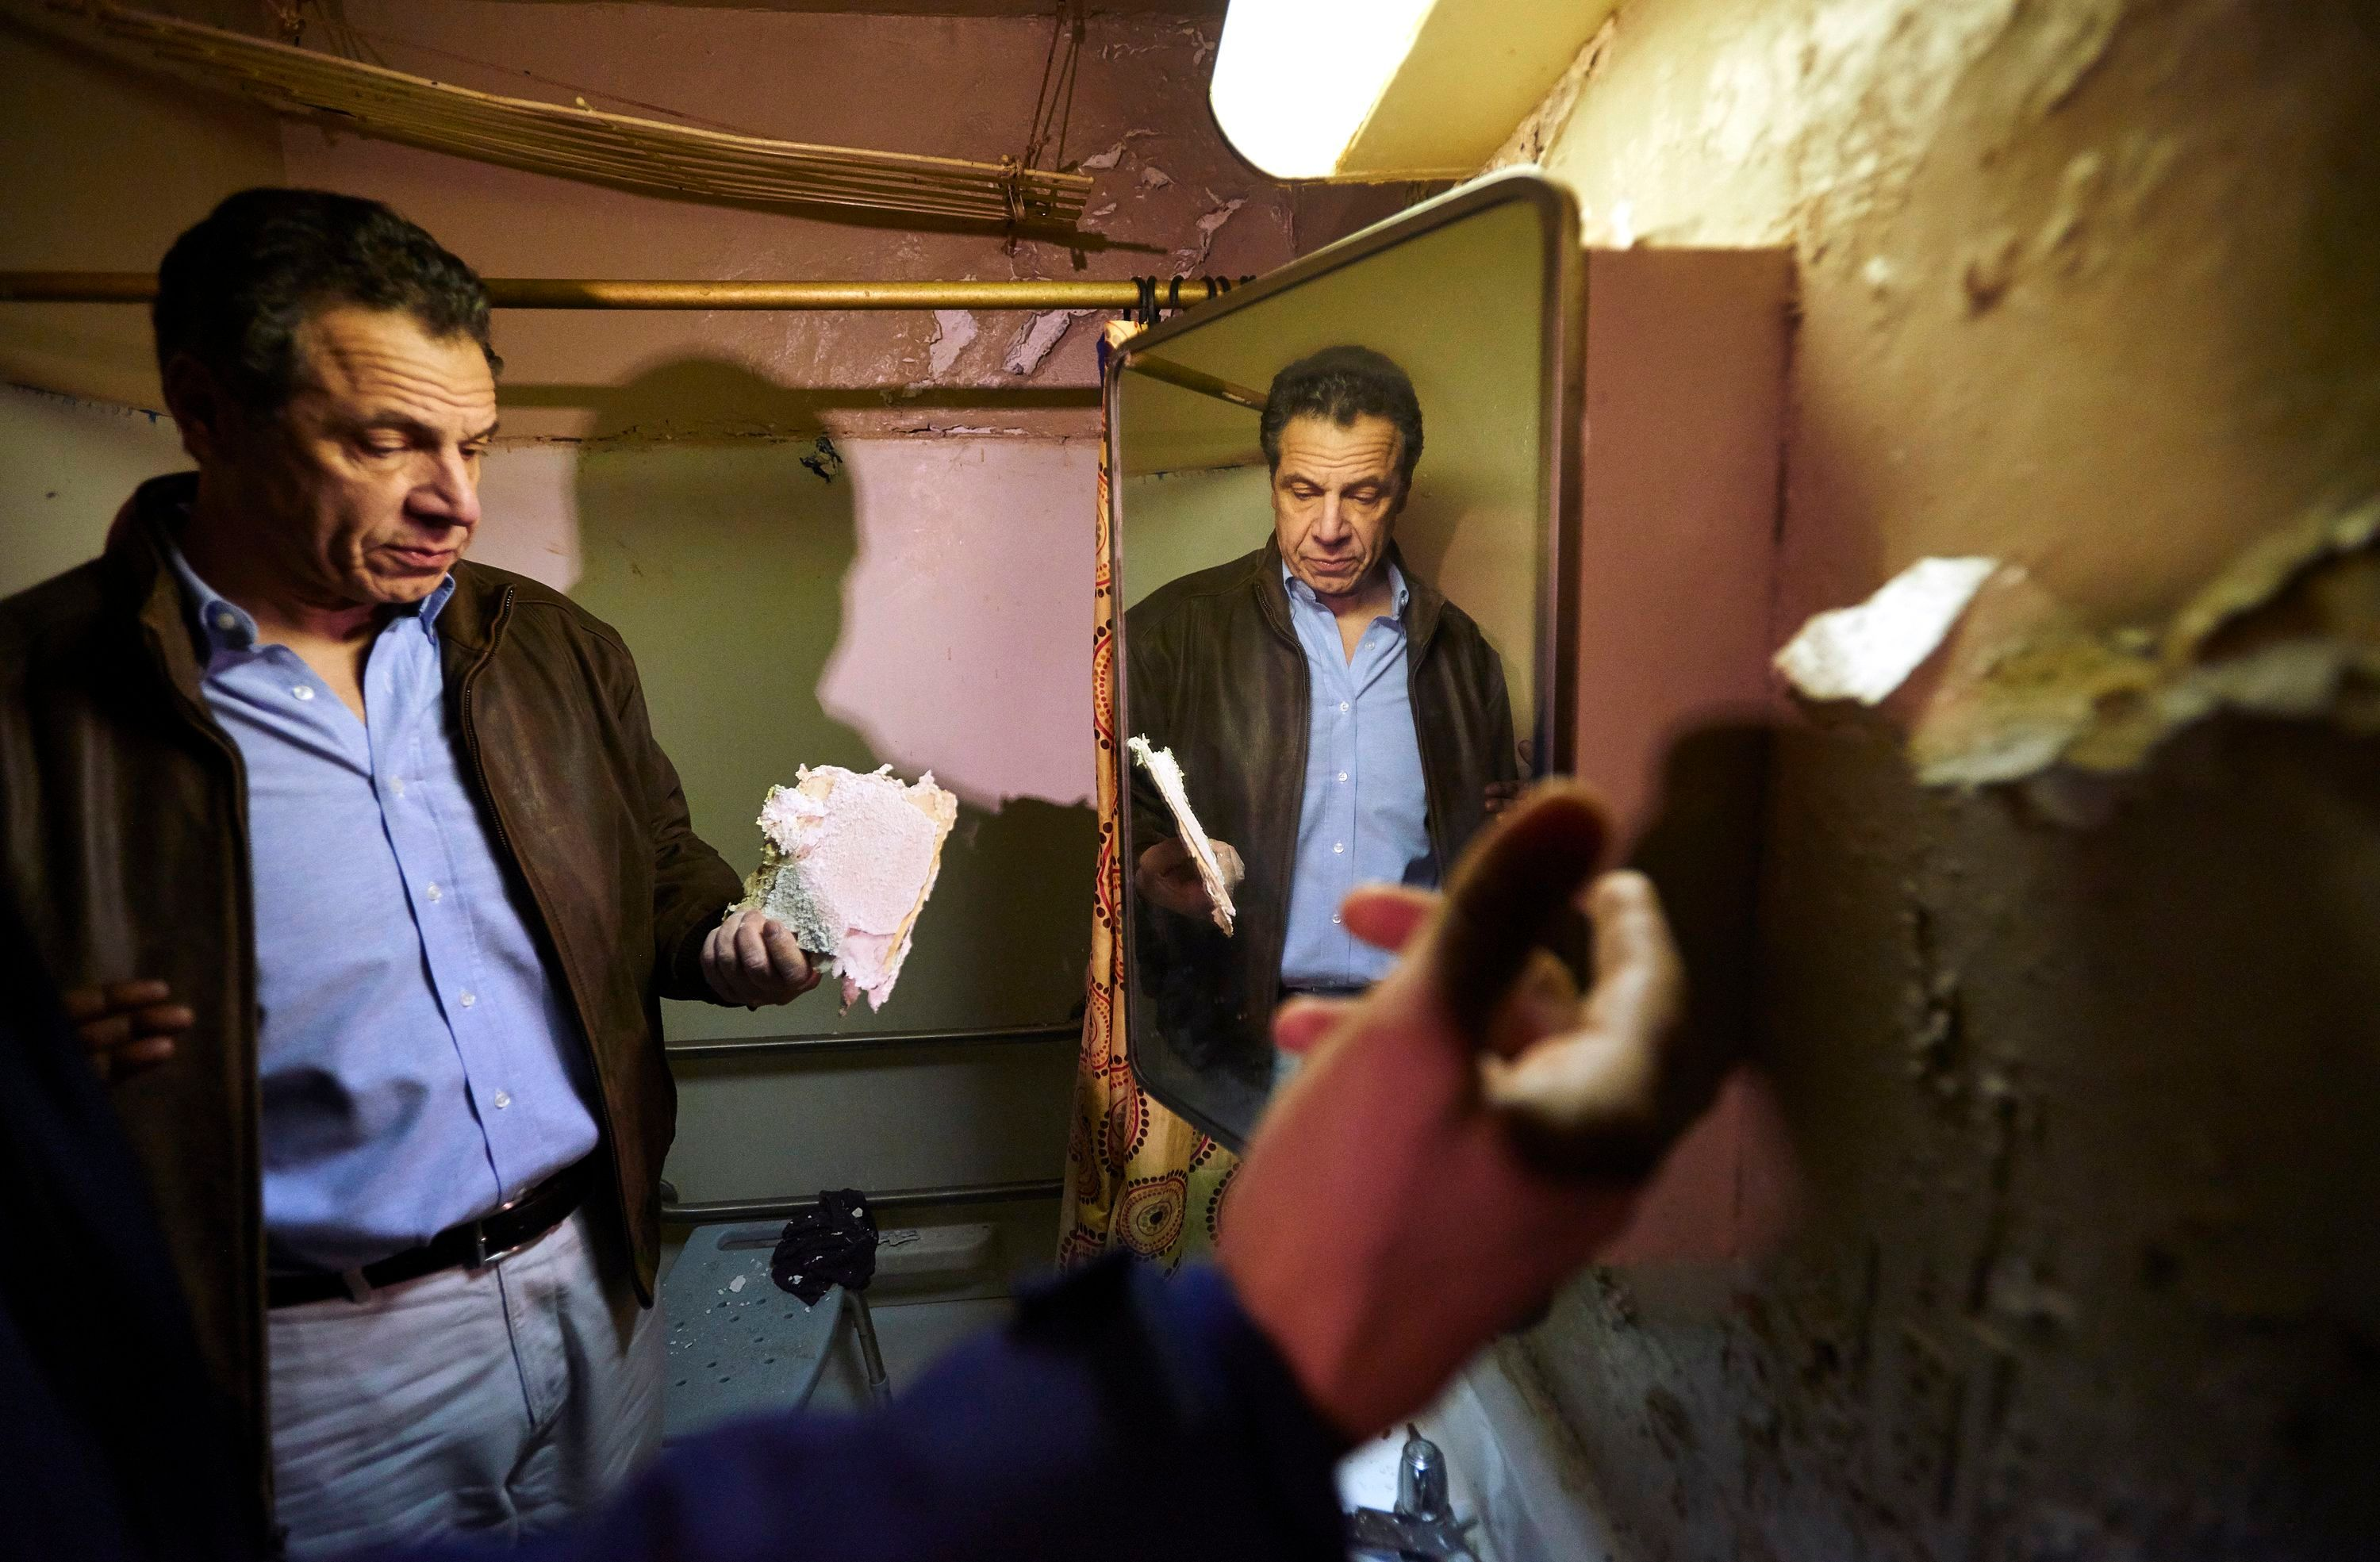 In 2018, Governor Andrew Cuomo examined a damaged piece of a bathroom wall during a tour of the Andrew Jackson Houses in the Bronx.